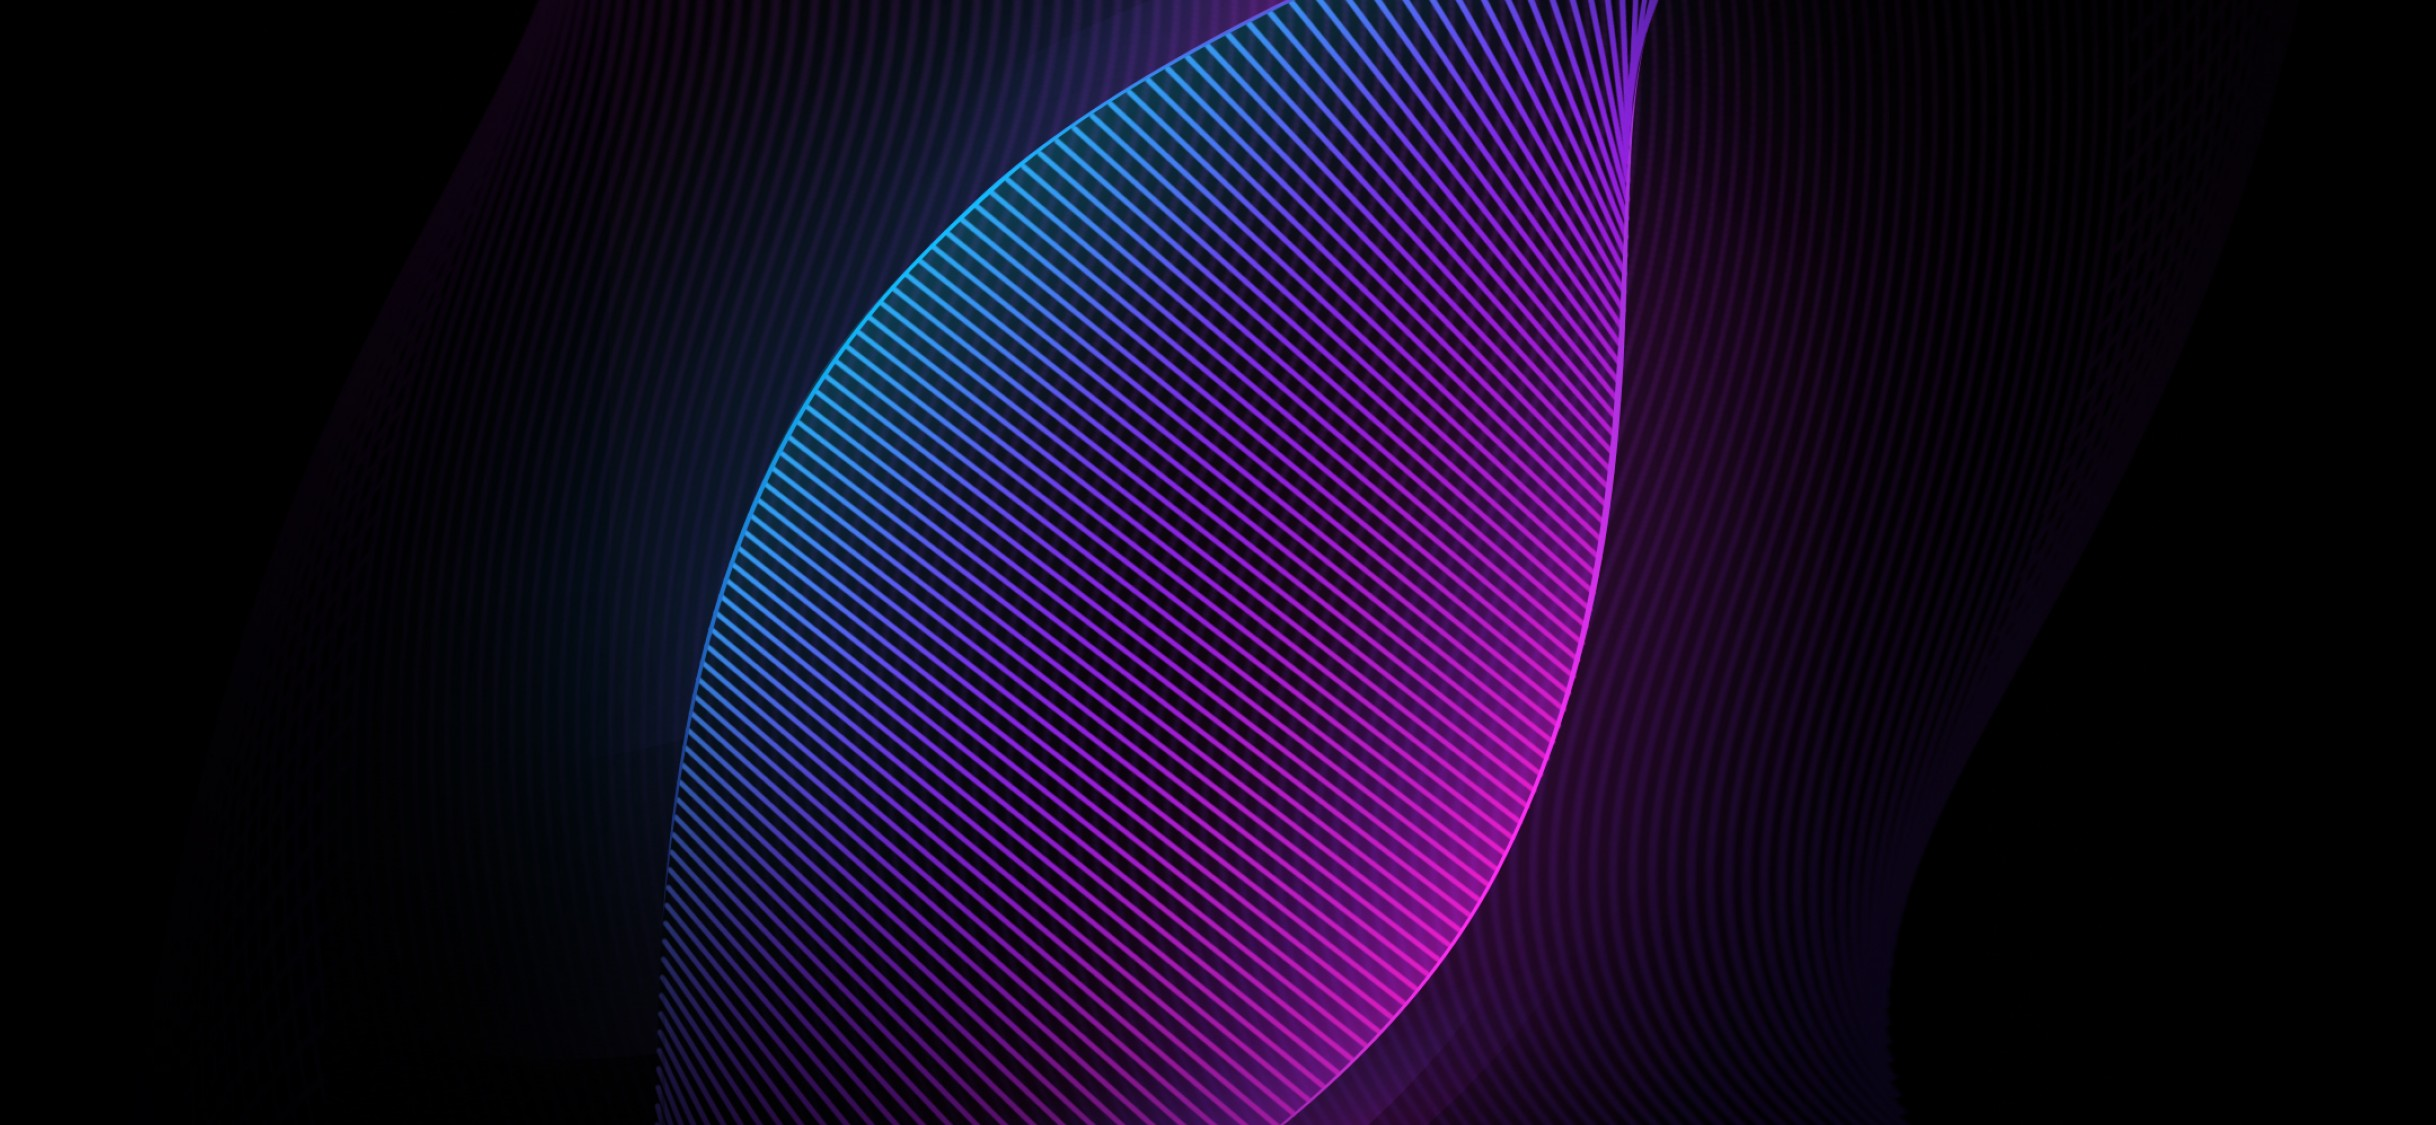 Download Free Cool Retro Neon Pattern Wallpaper Iphone X